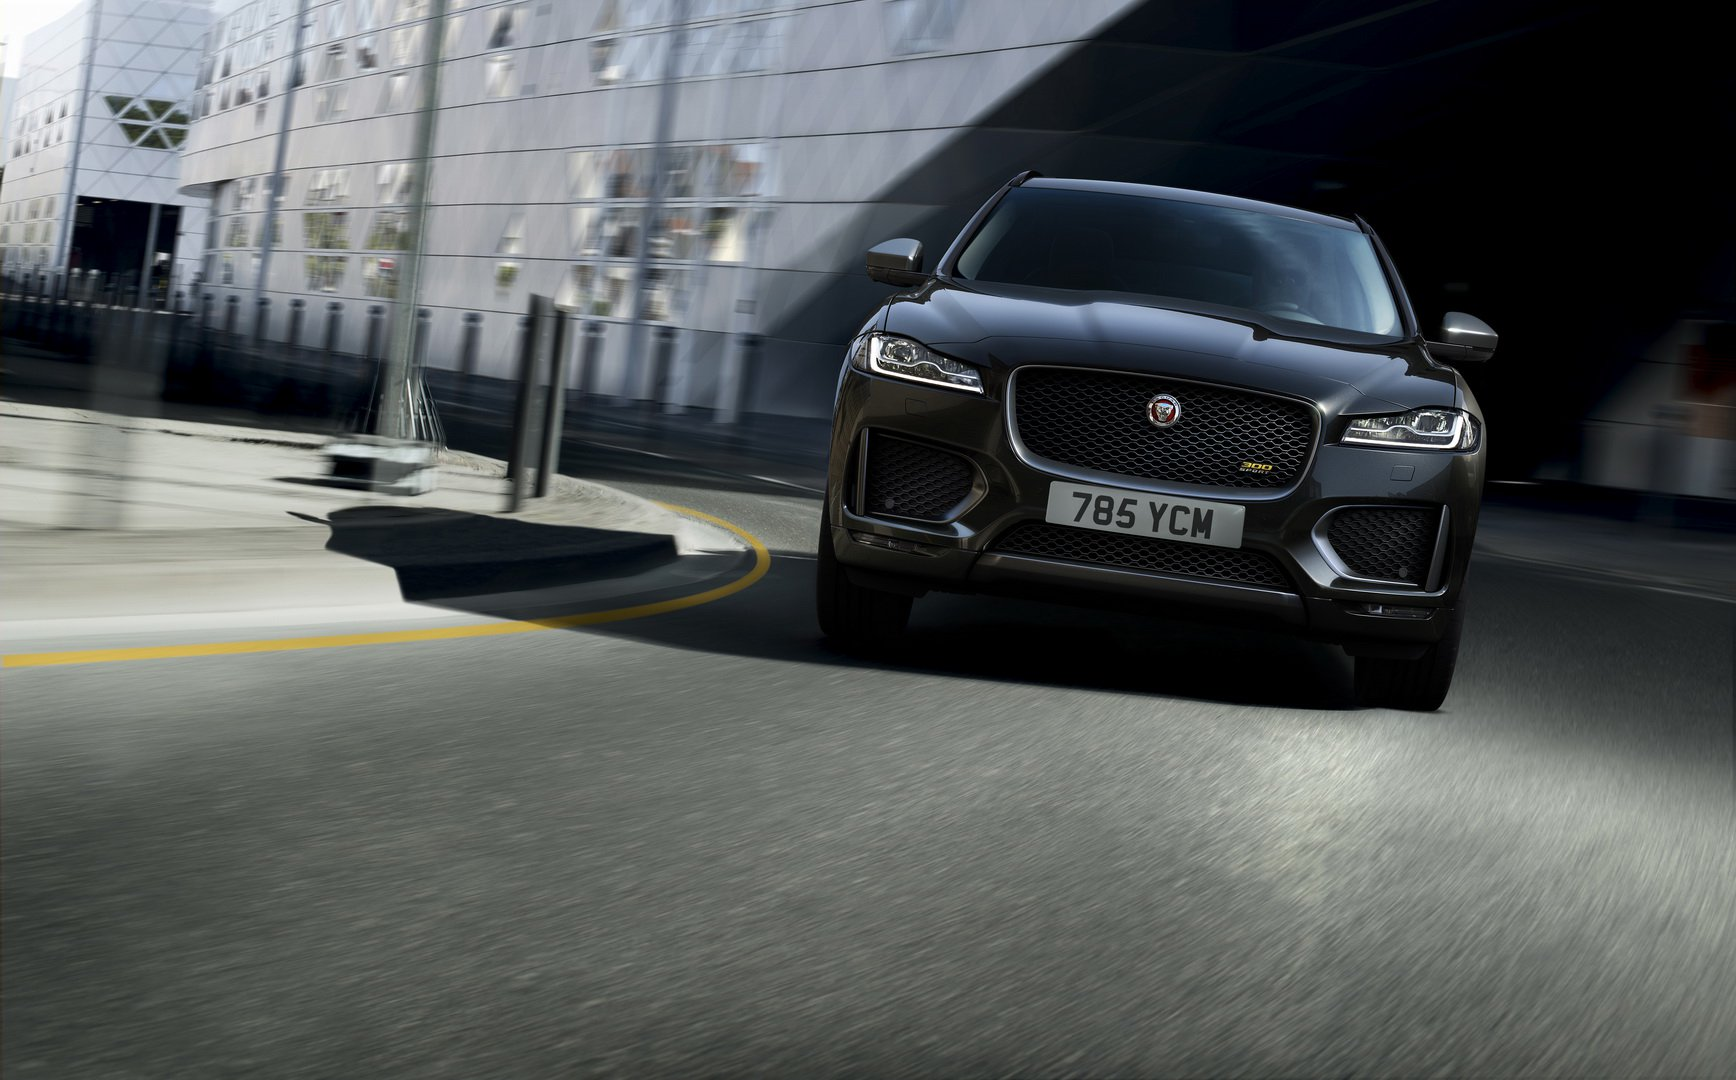 jaguar-unveils-two-special-editions-based-on-f-pace-crossover_13